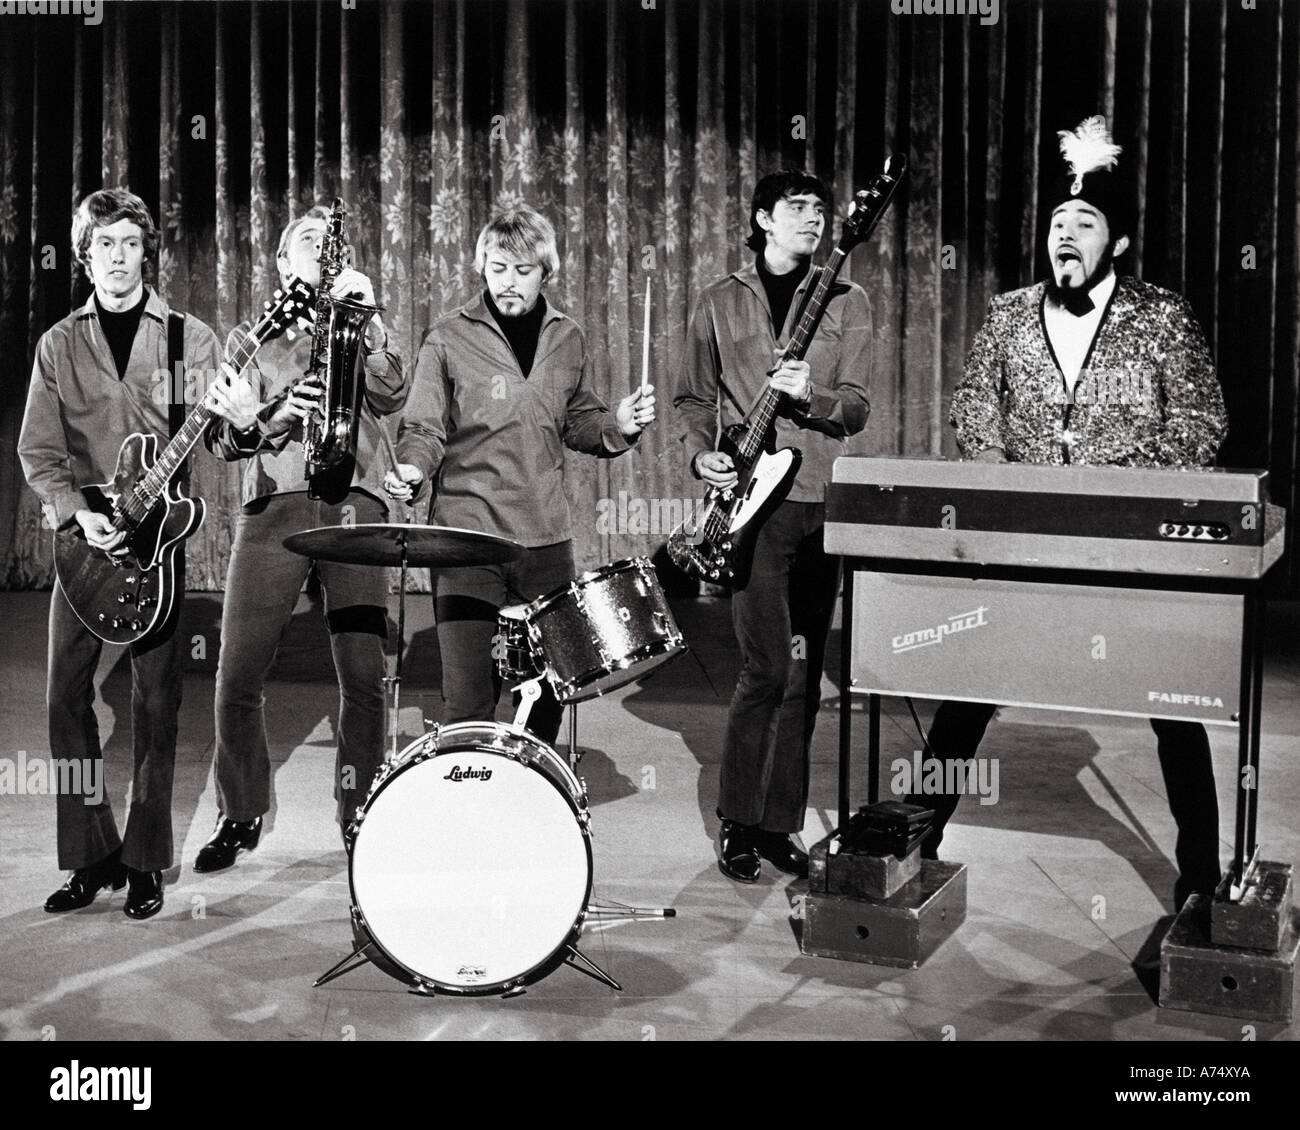 SAM THE SHAM AND THE PIRATES groupe américain Photo Stock